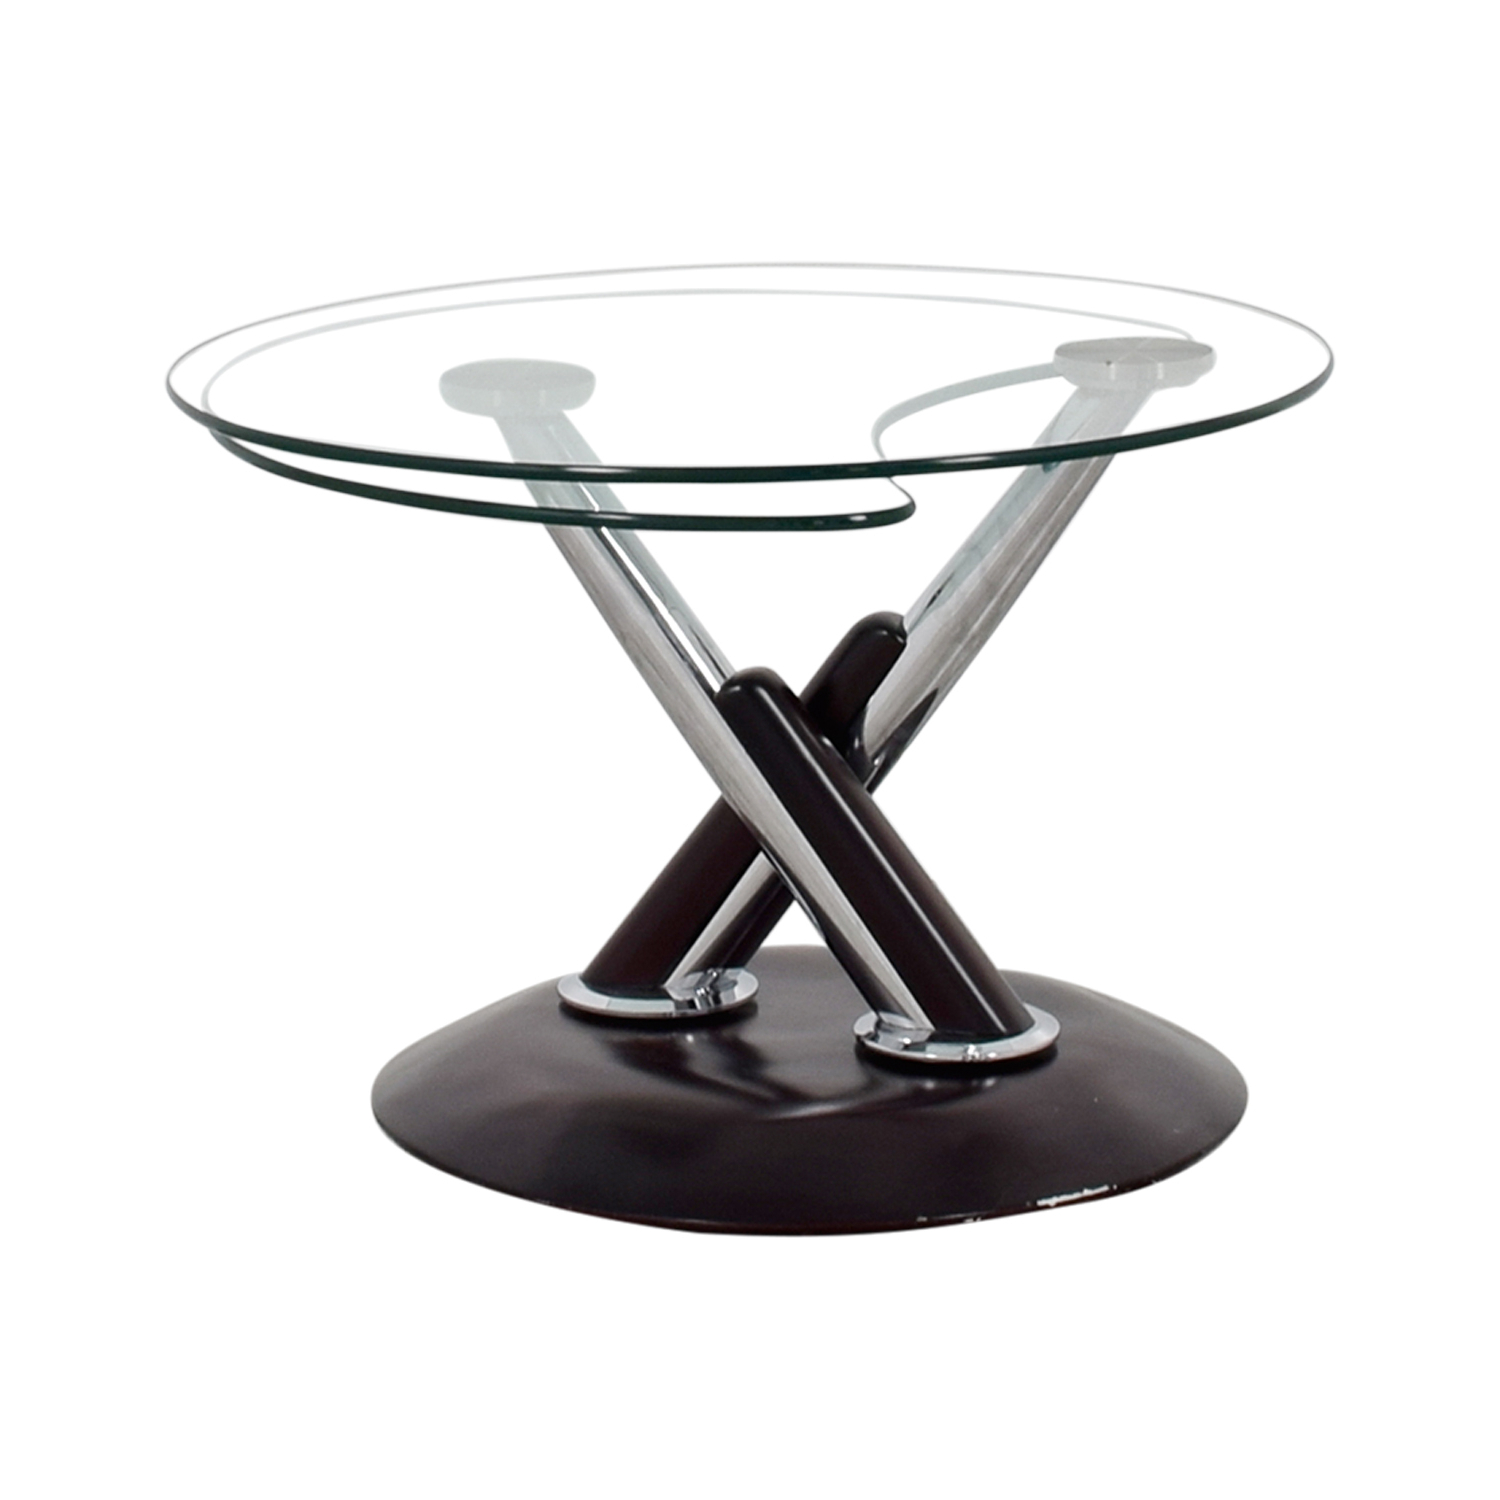 [%90% Off – Rotating Glass Table / Tables Within Well Known Spin Rotating Coffee Tables|Spin Rotating Coffee Tables Within Current 90% Off – Rotating Glass Table / Tables|Recent Spin Rotating Coffee Tables Inside 90% Off – Rotating Glass Table / Tables|Preferred 90% Off – Rotating Glass Table / Tables In Spin Rotating Coffee Tables%] (View 2 of 20)